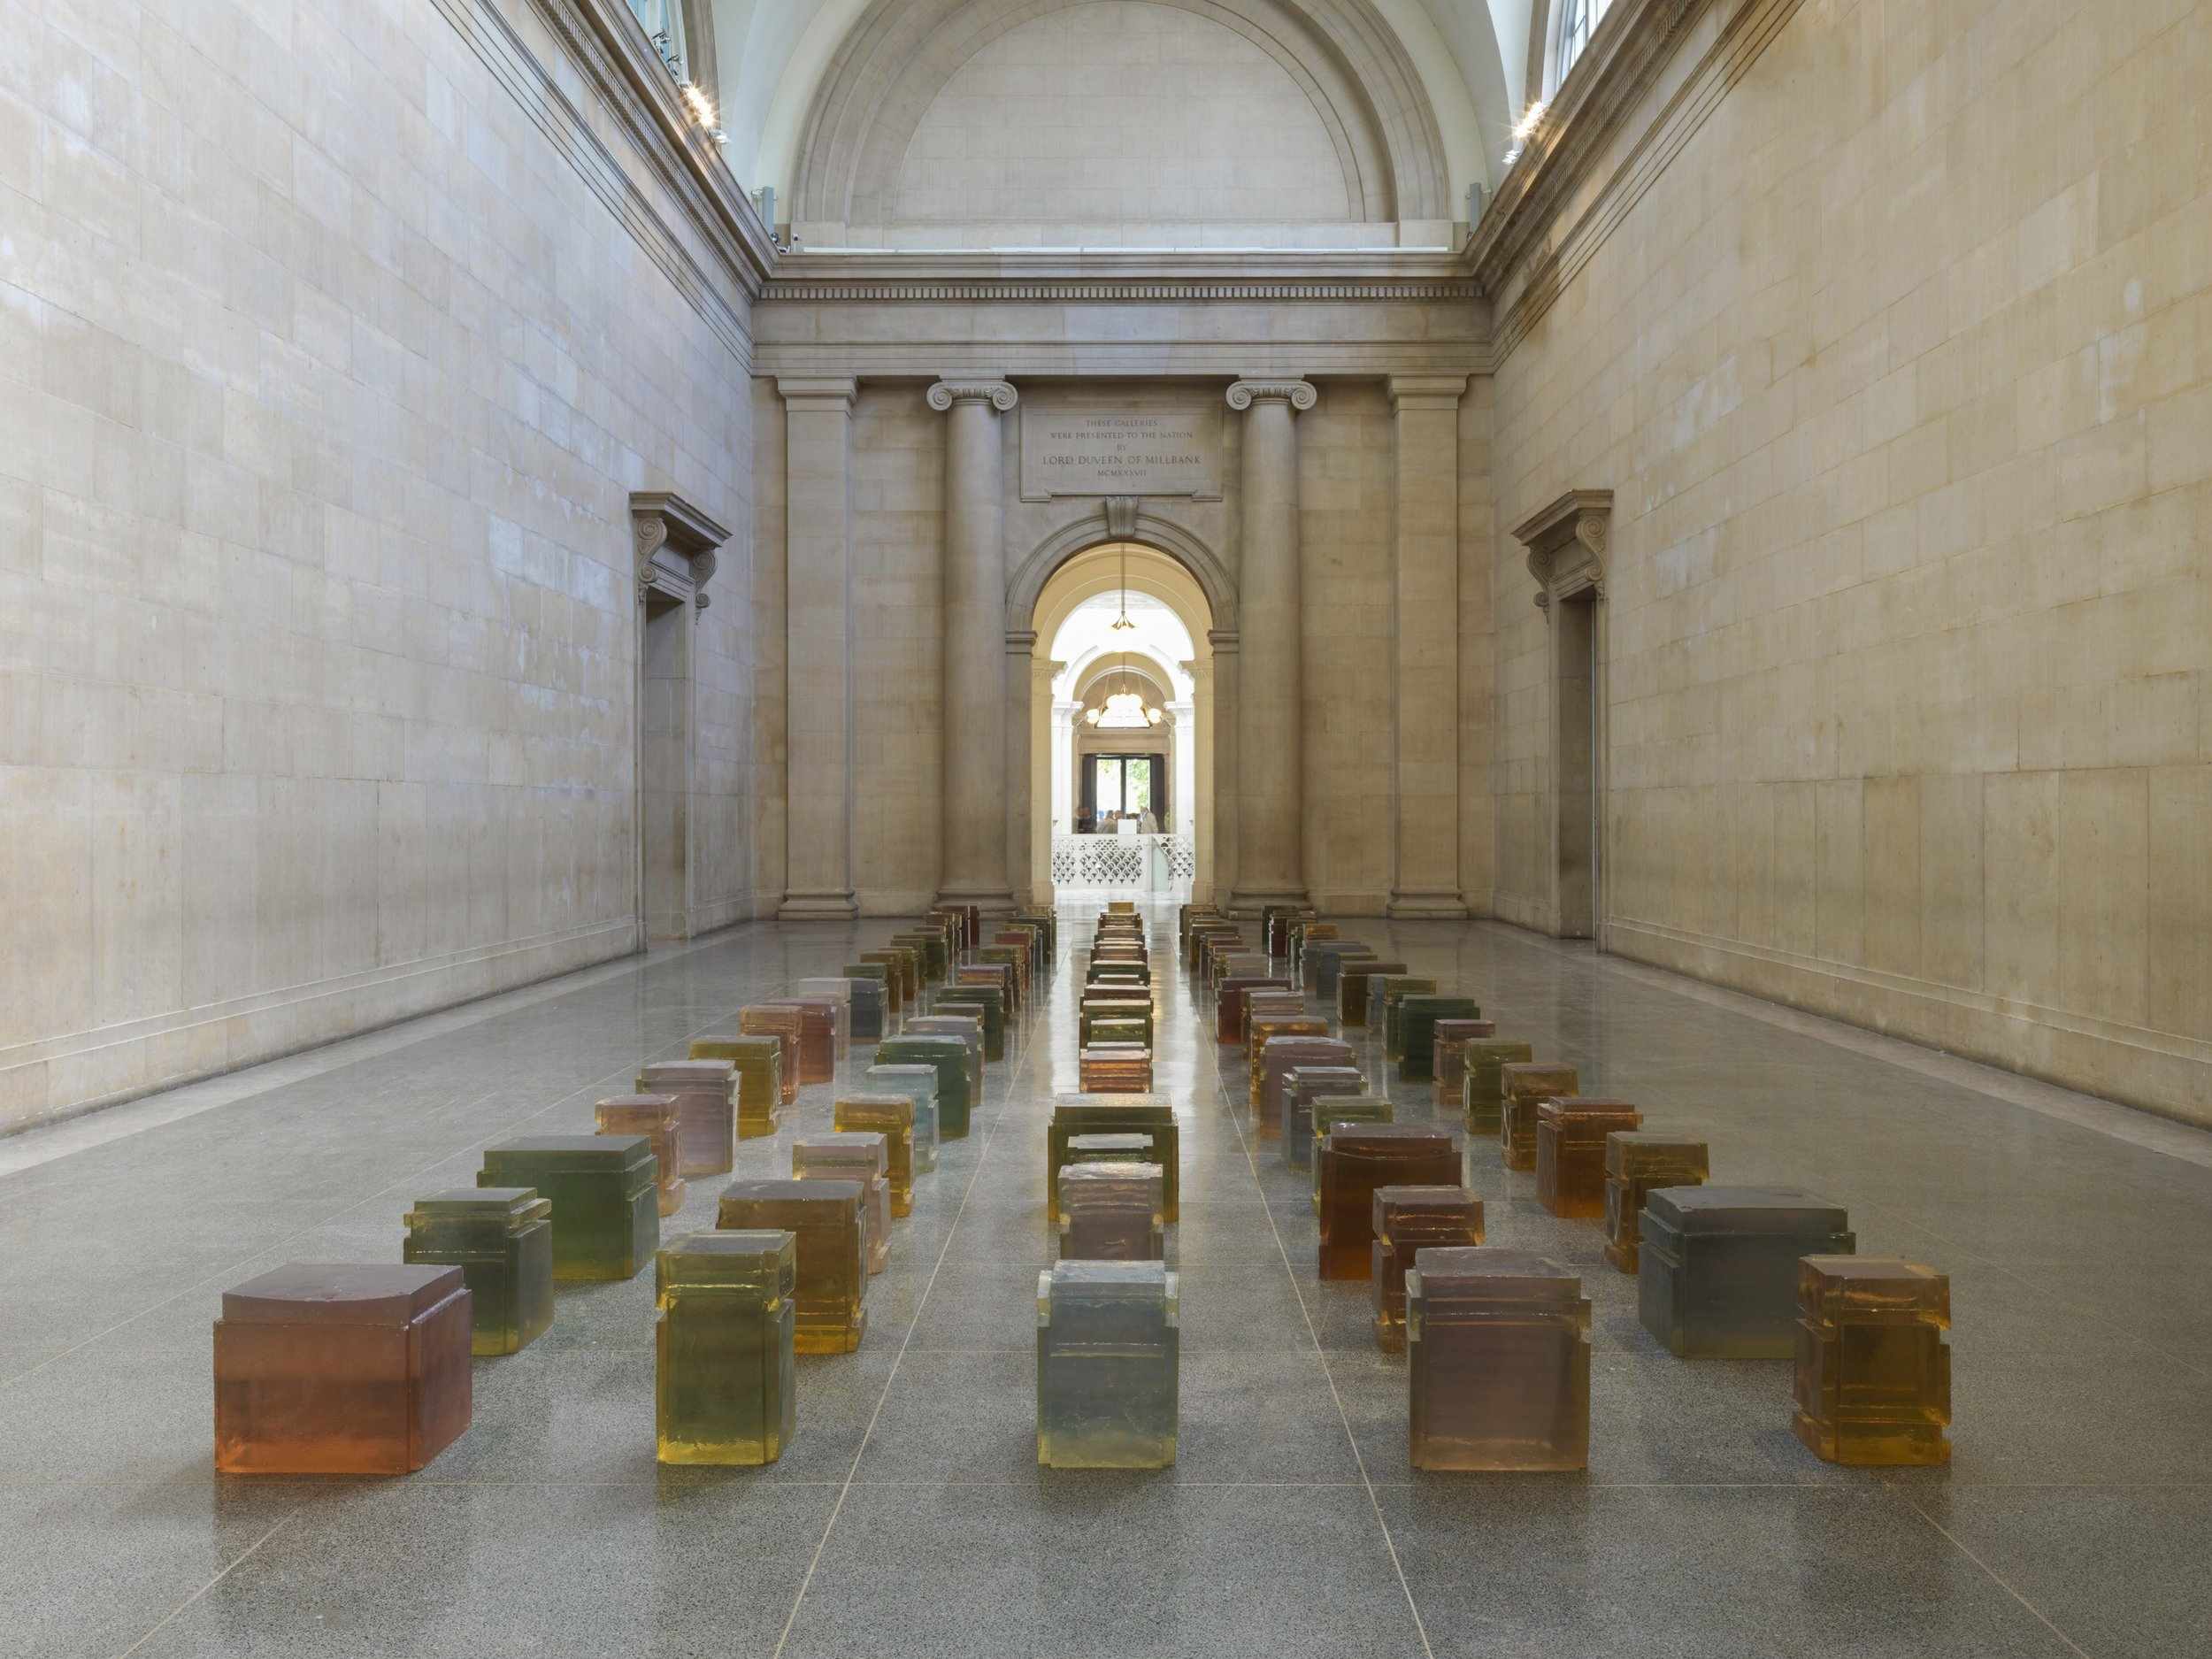 Rachel Whiteread, Untitled (One Hundred Spaces), 1995. Resin. Pinault Collection © Rachel Whiteread. Photo: © Tate (Seraphina Neville and Andrew Dunkley)